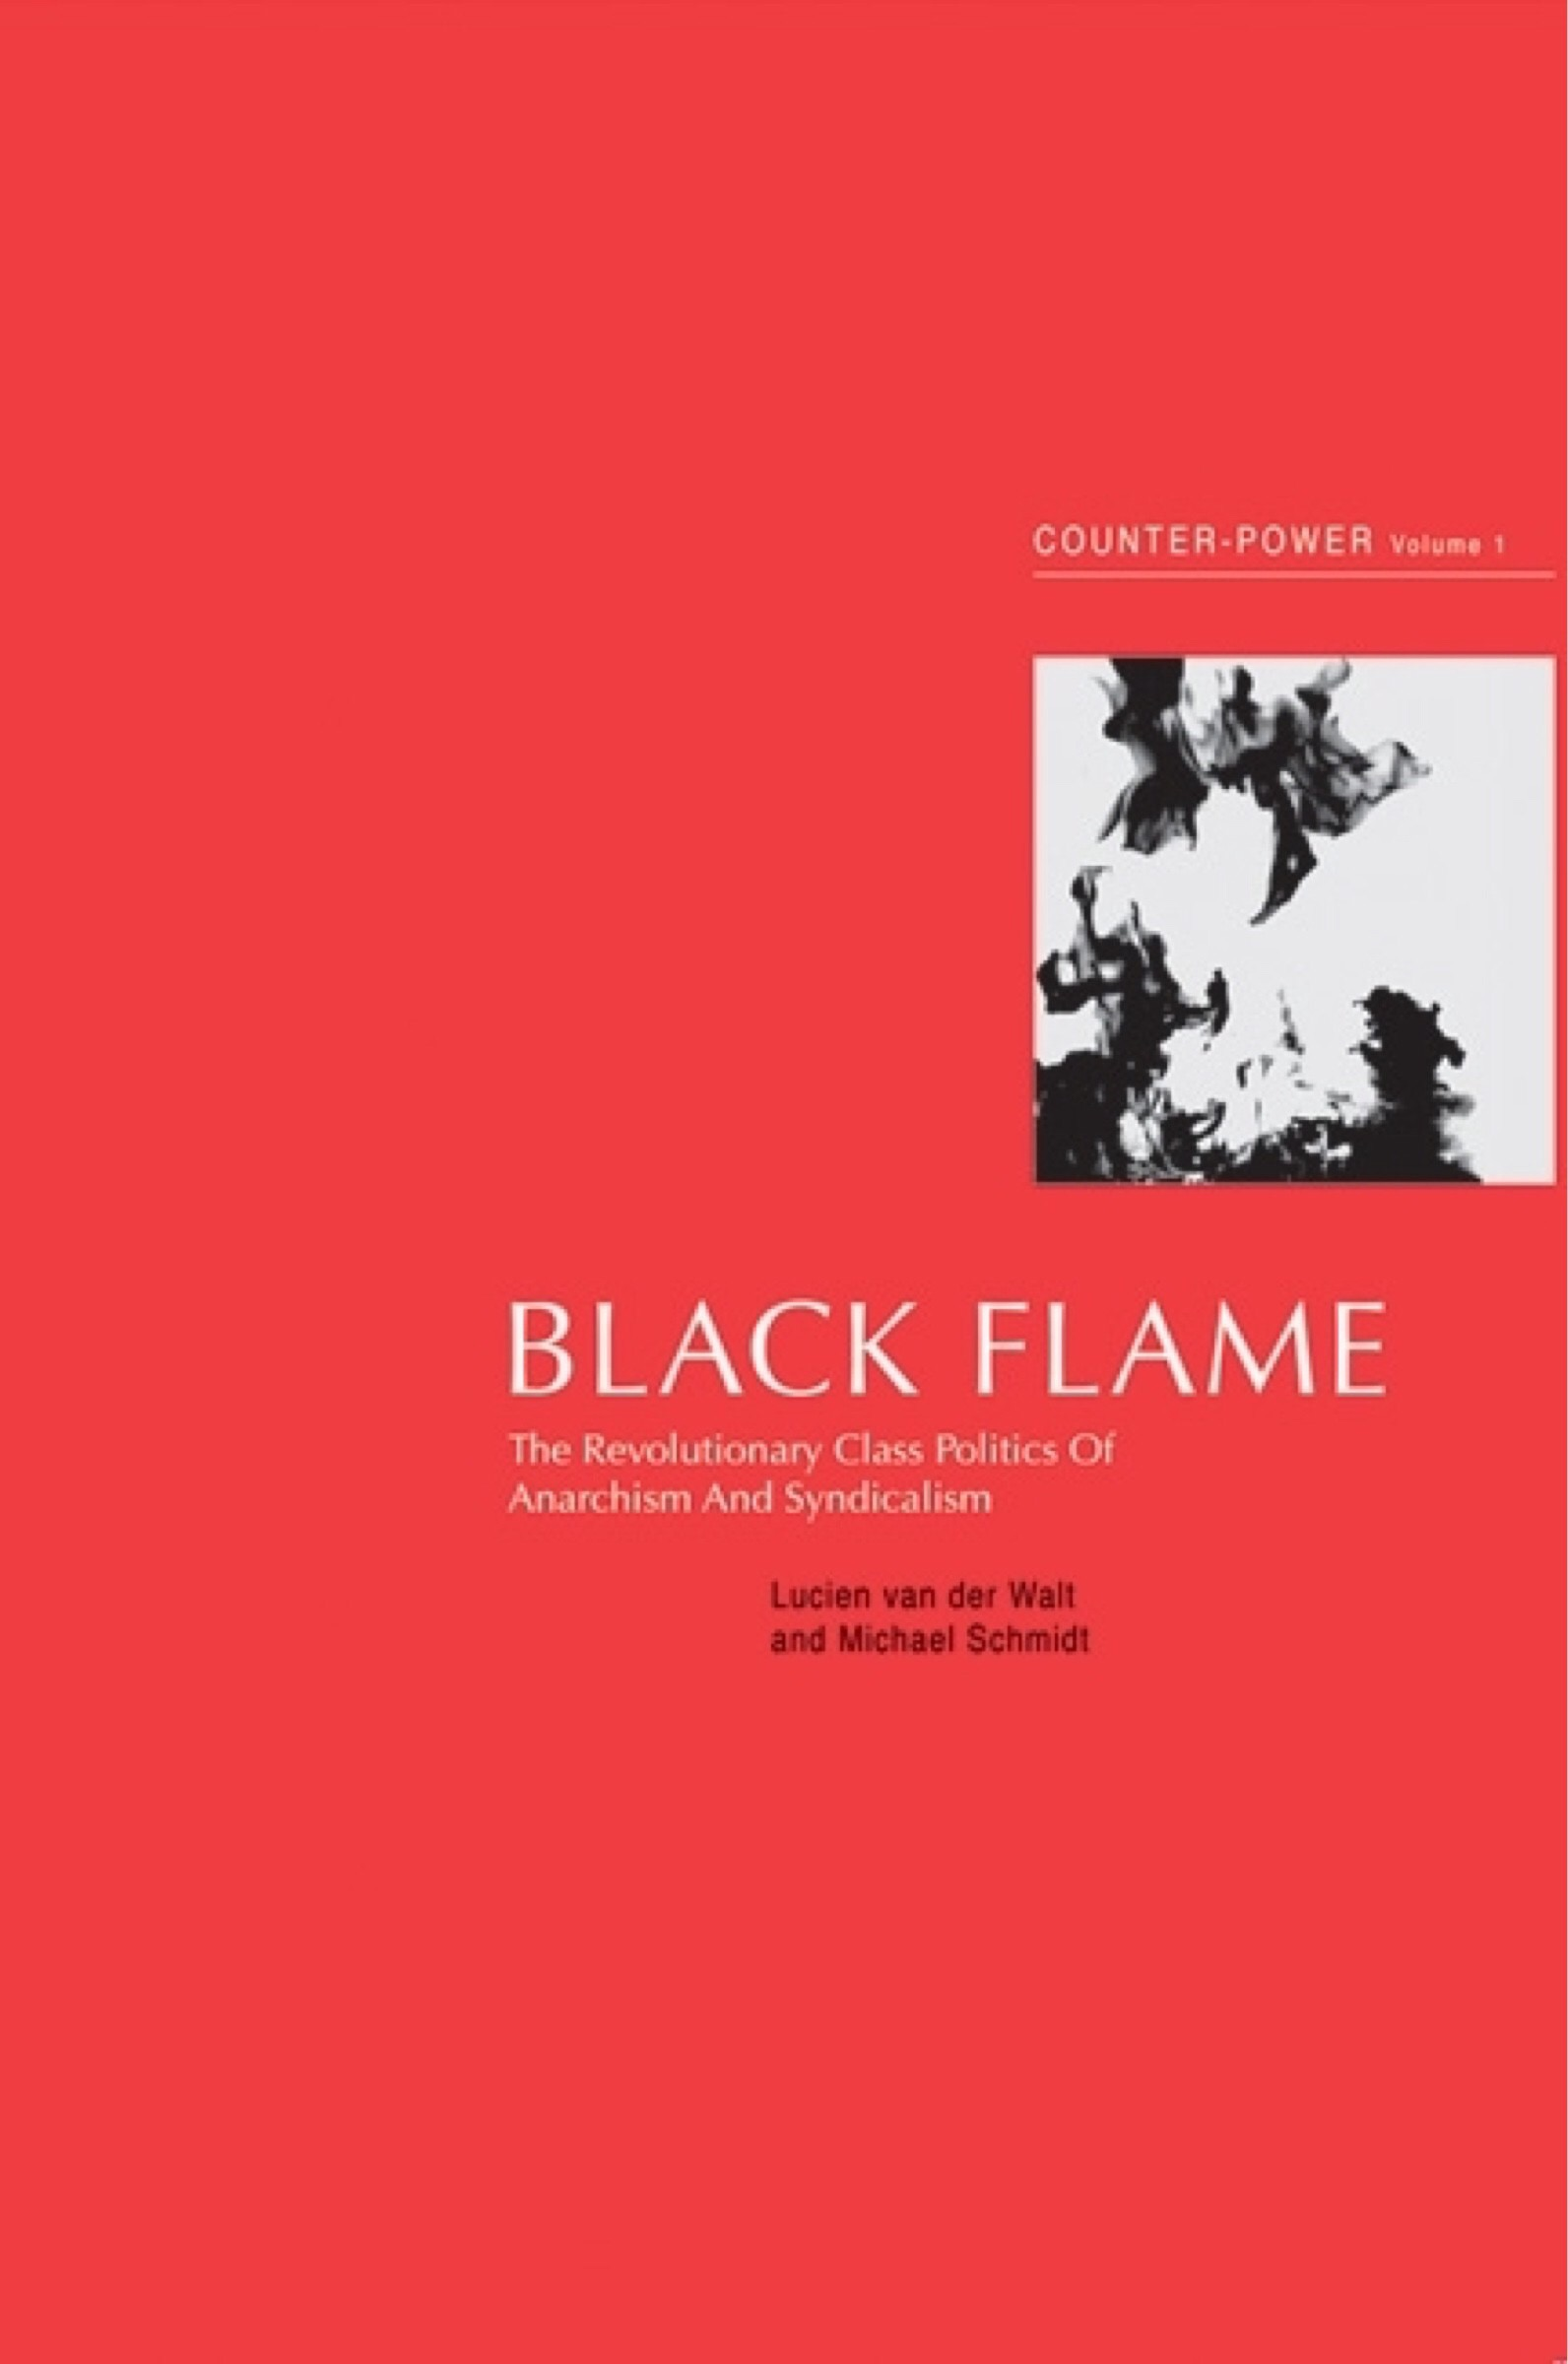 a look back at black flame by lucien van der walt and michael